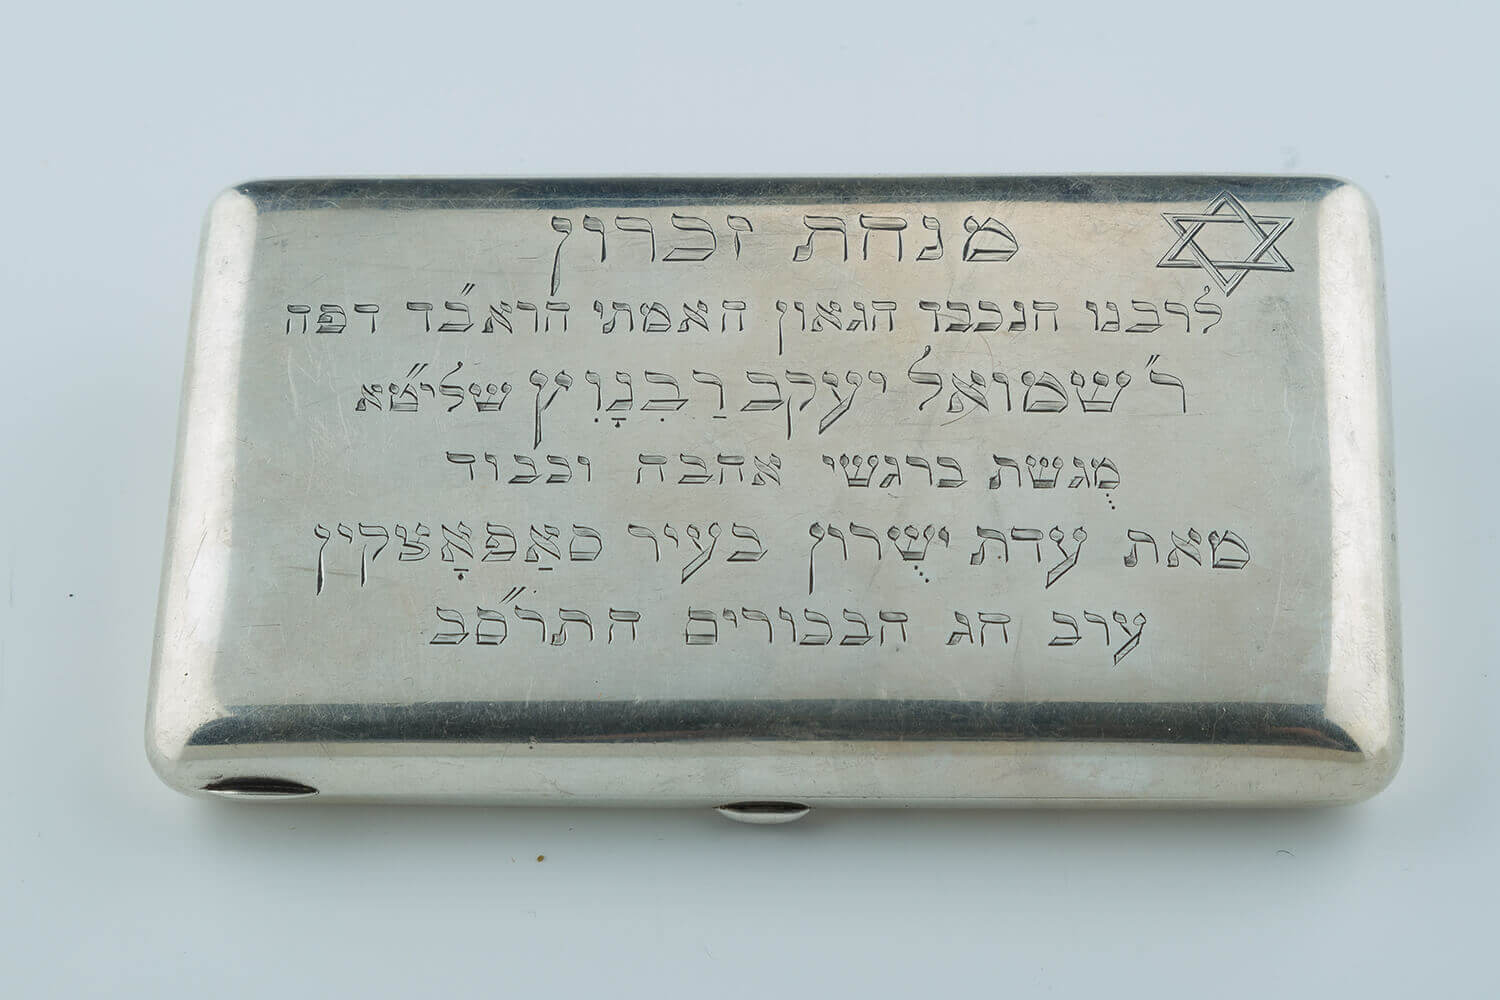 063. A HISTORICALLY IMPORTANT CIGARETTE CASE BELONGING TO RABBI SHMUEL YAAKOV RABINOWITZ